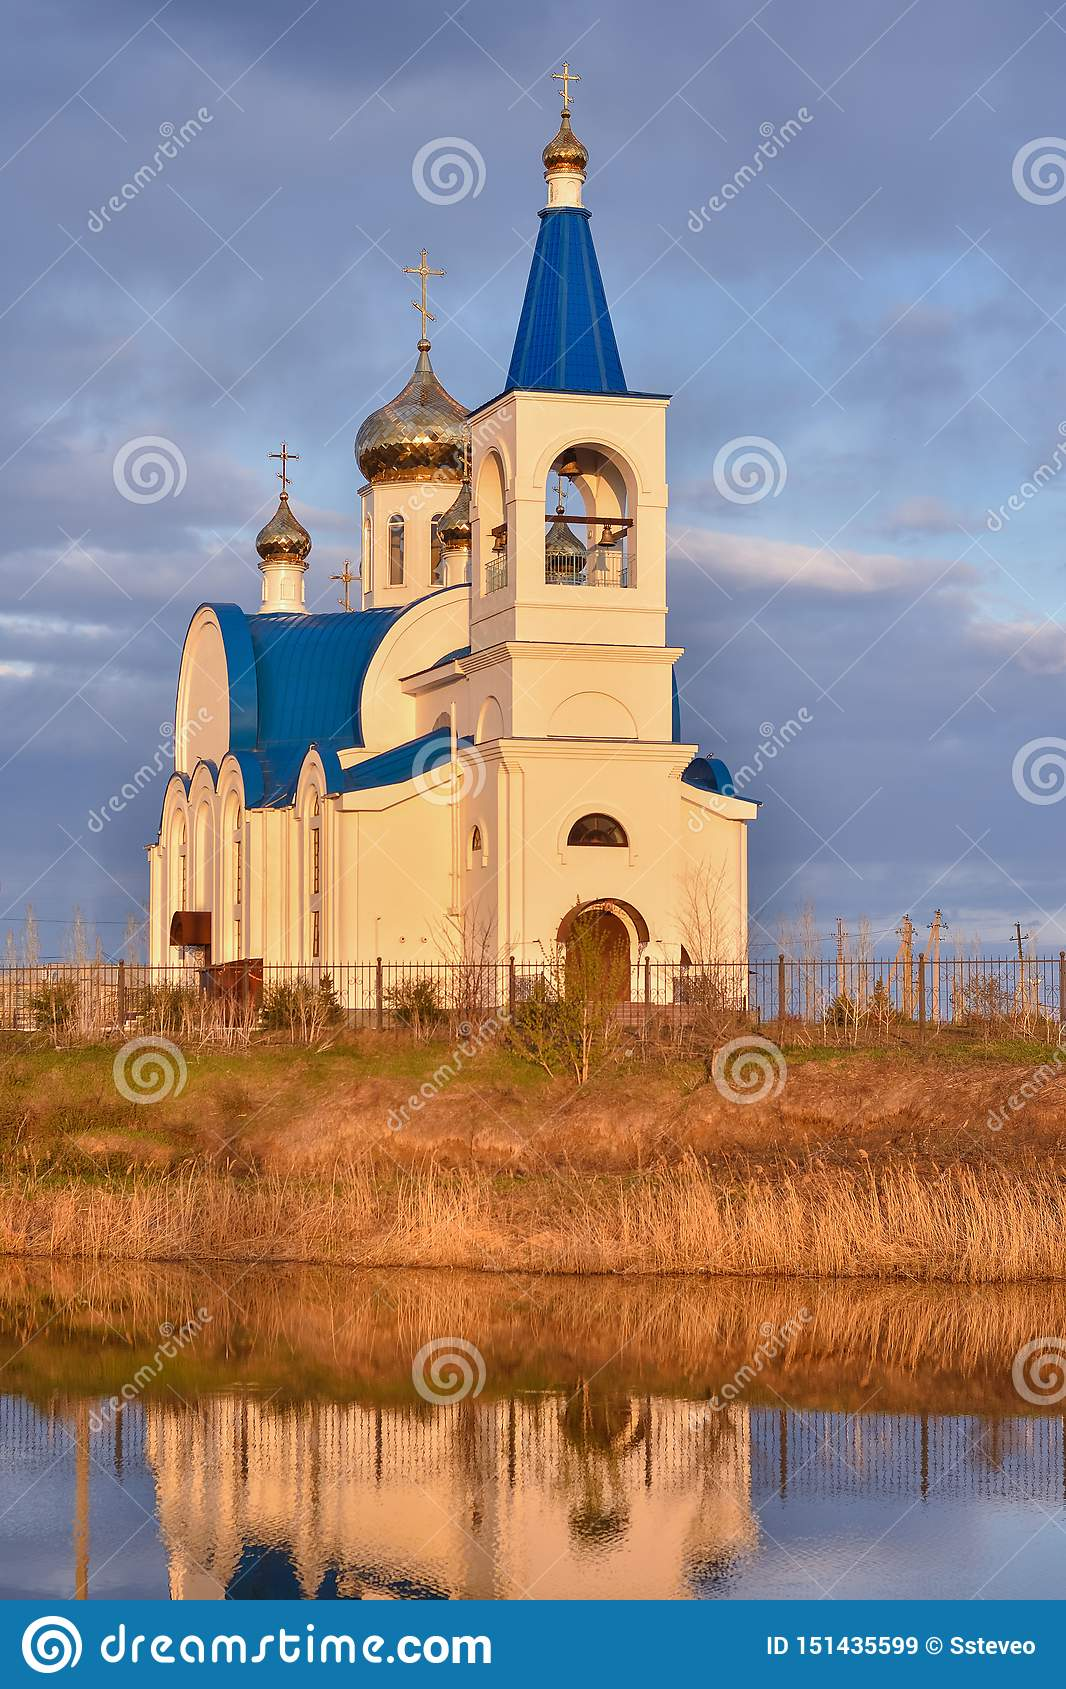 White church with blue roof on lake